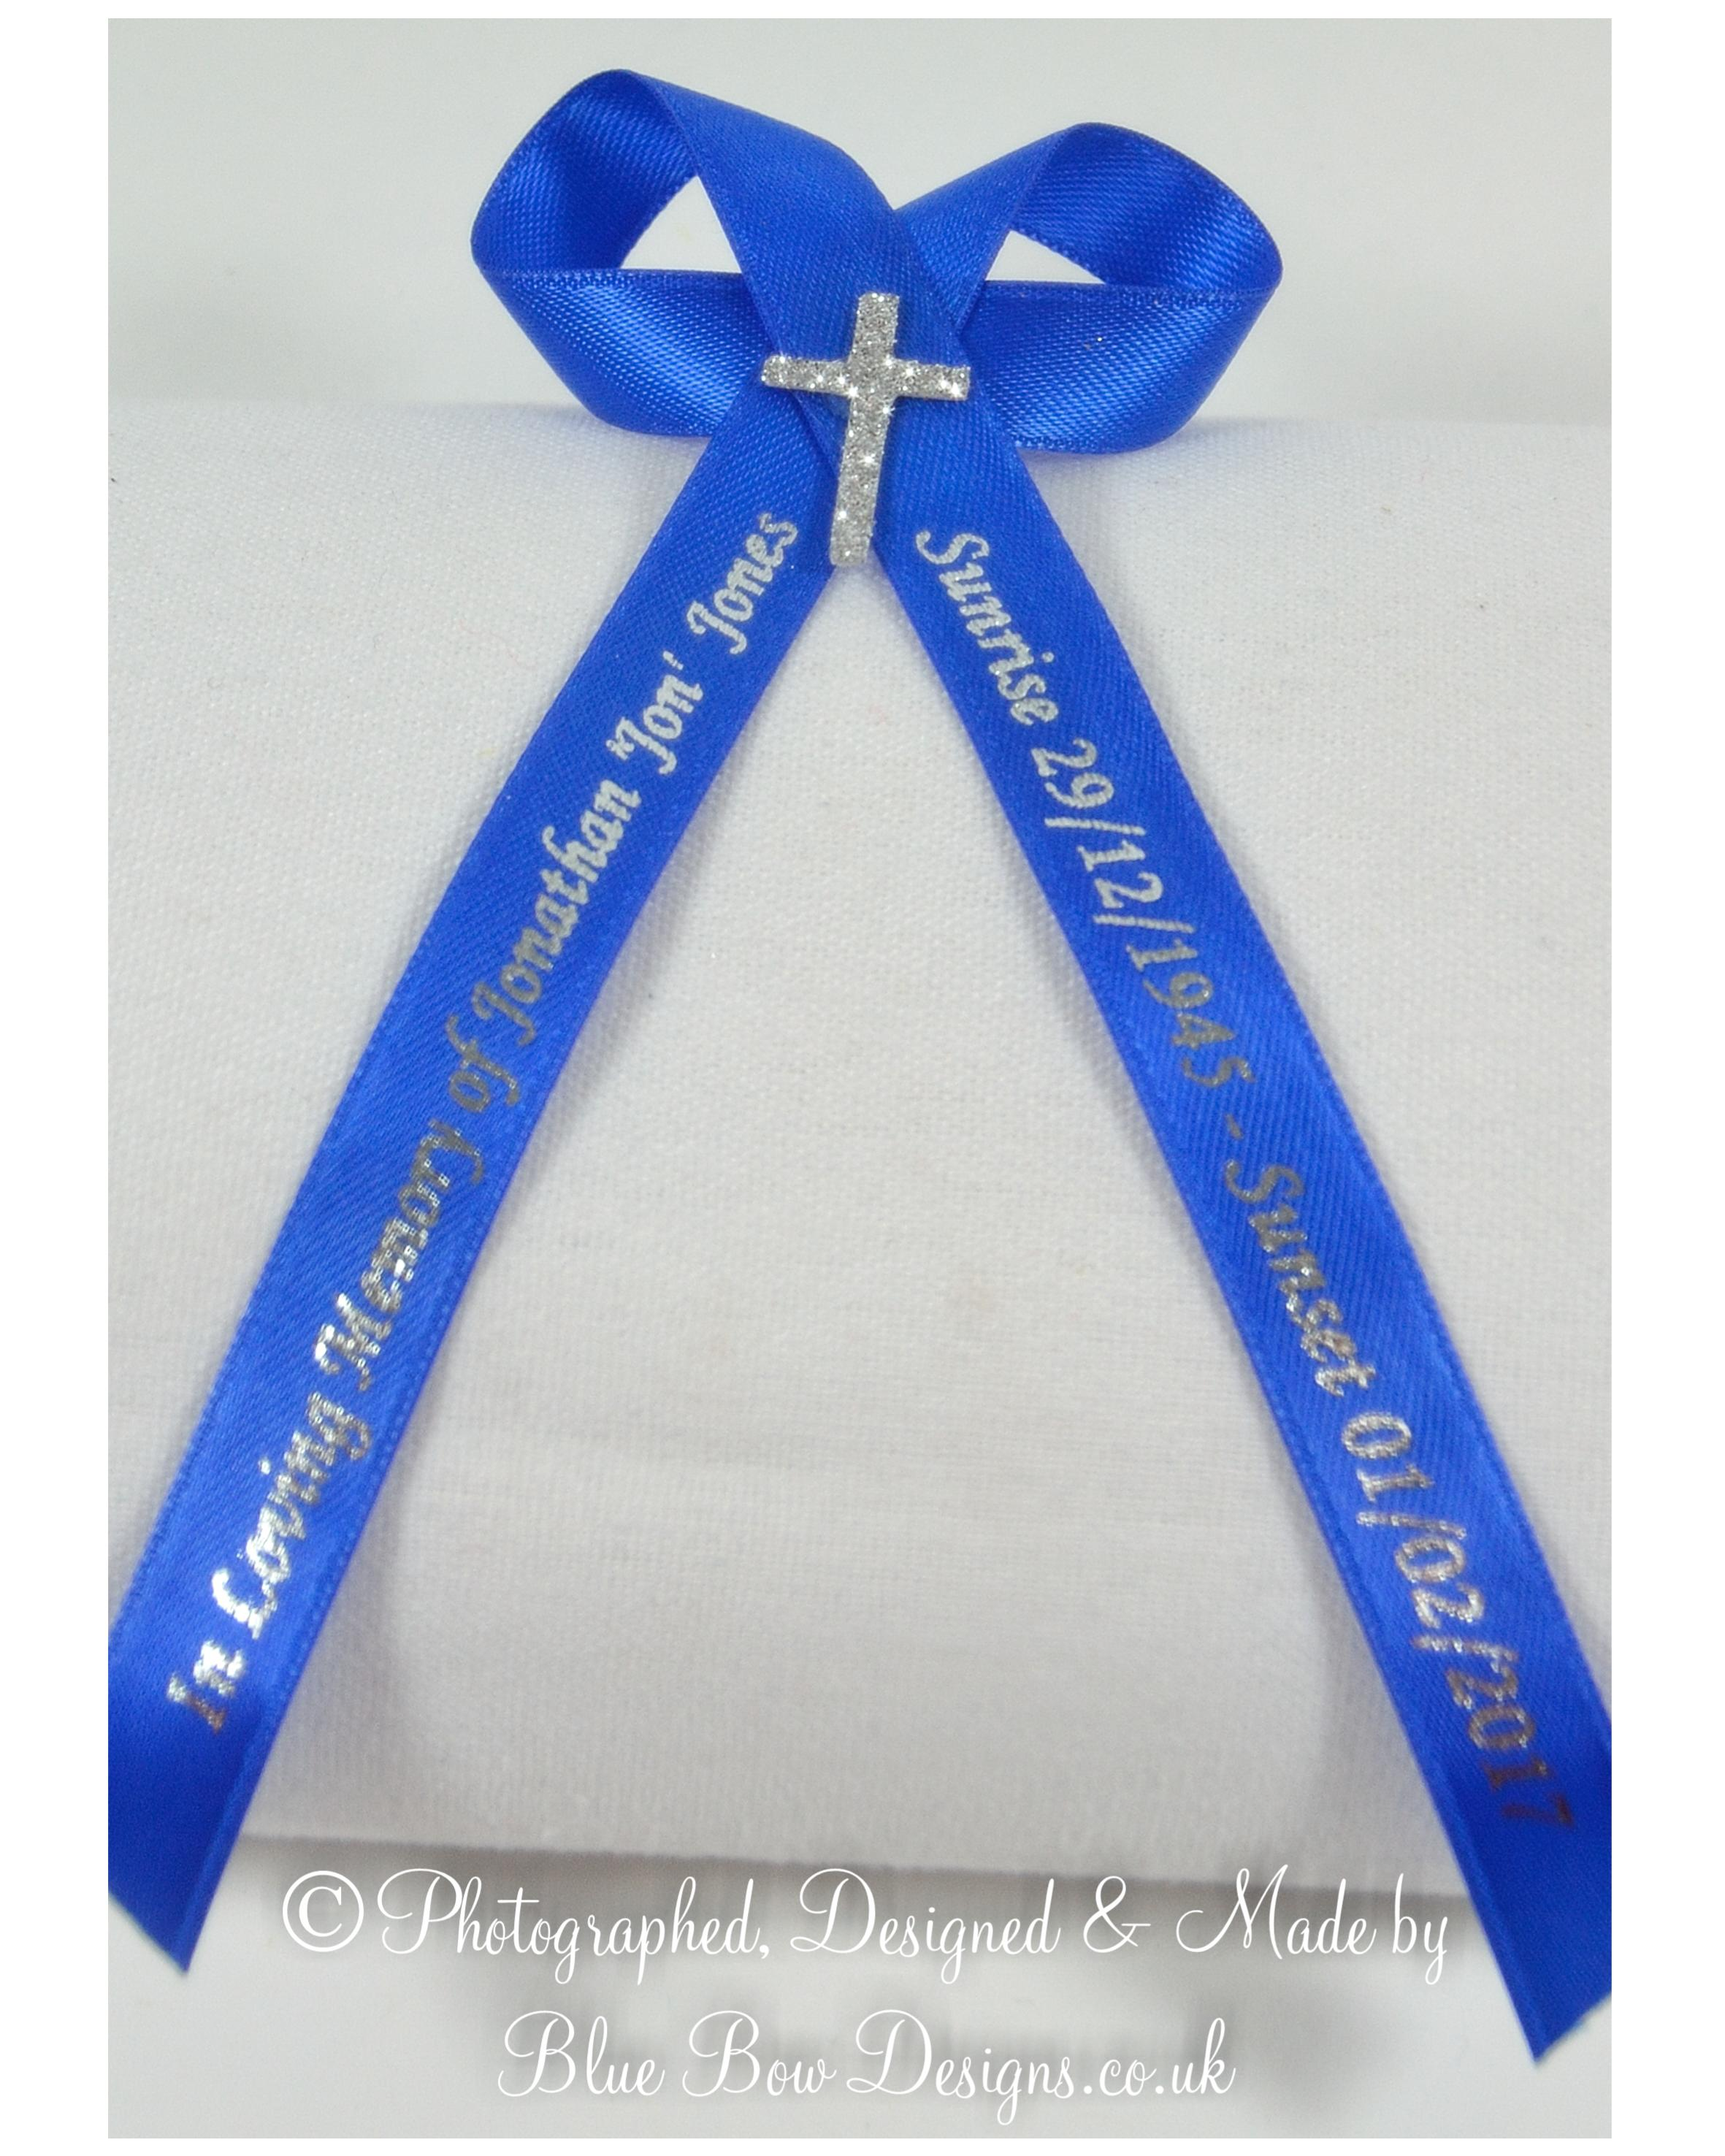 Royal blue memorial ribbon with silver cross